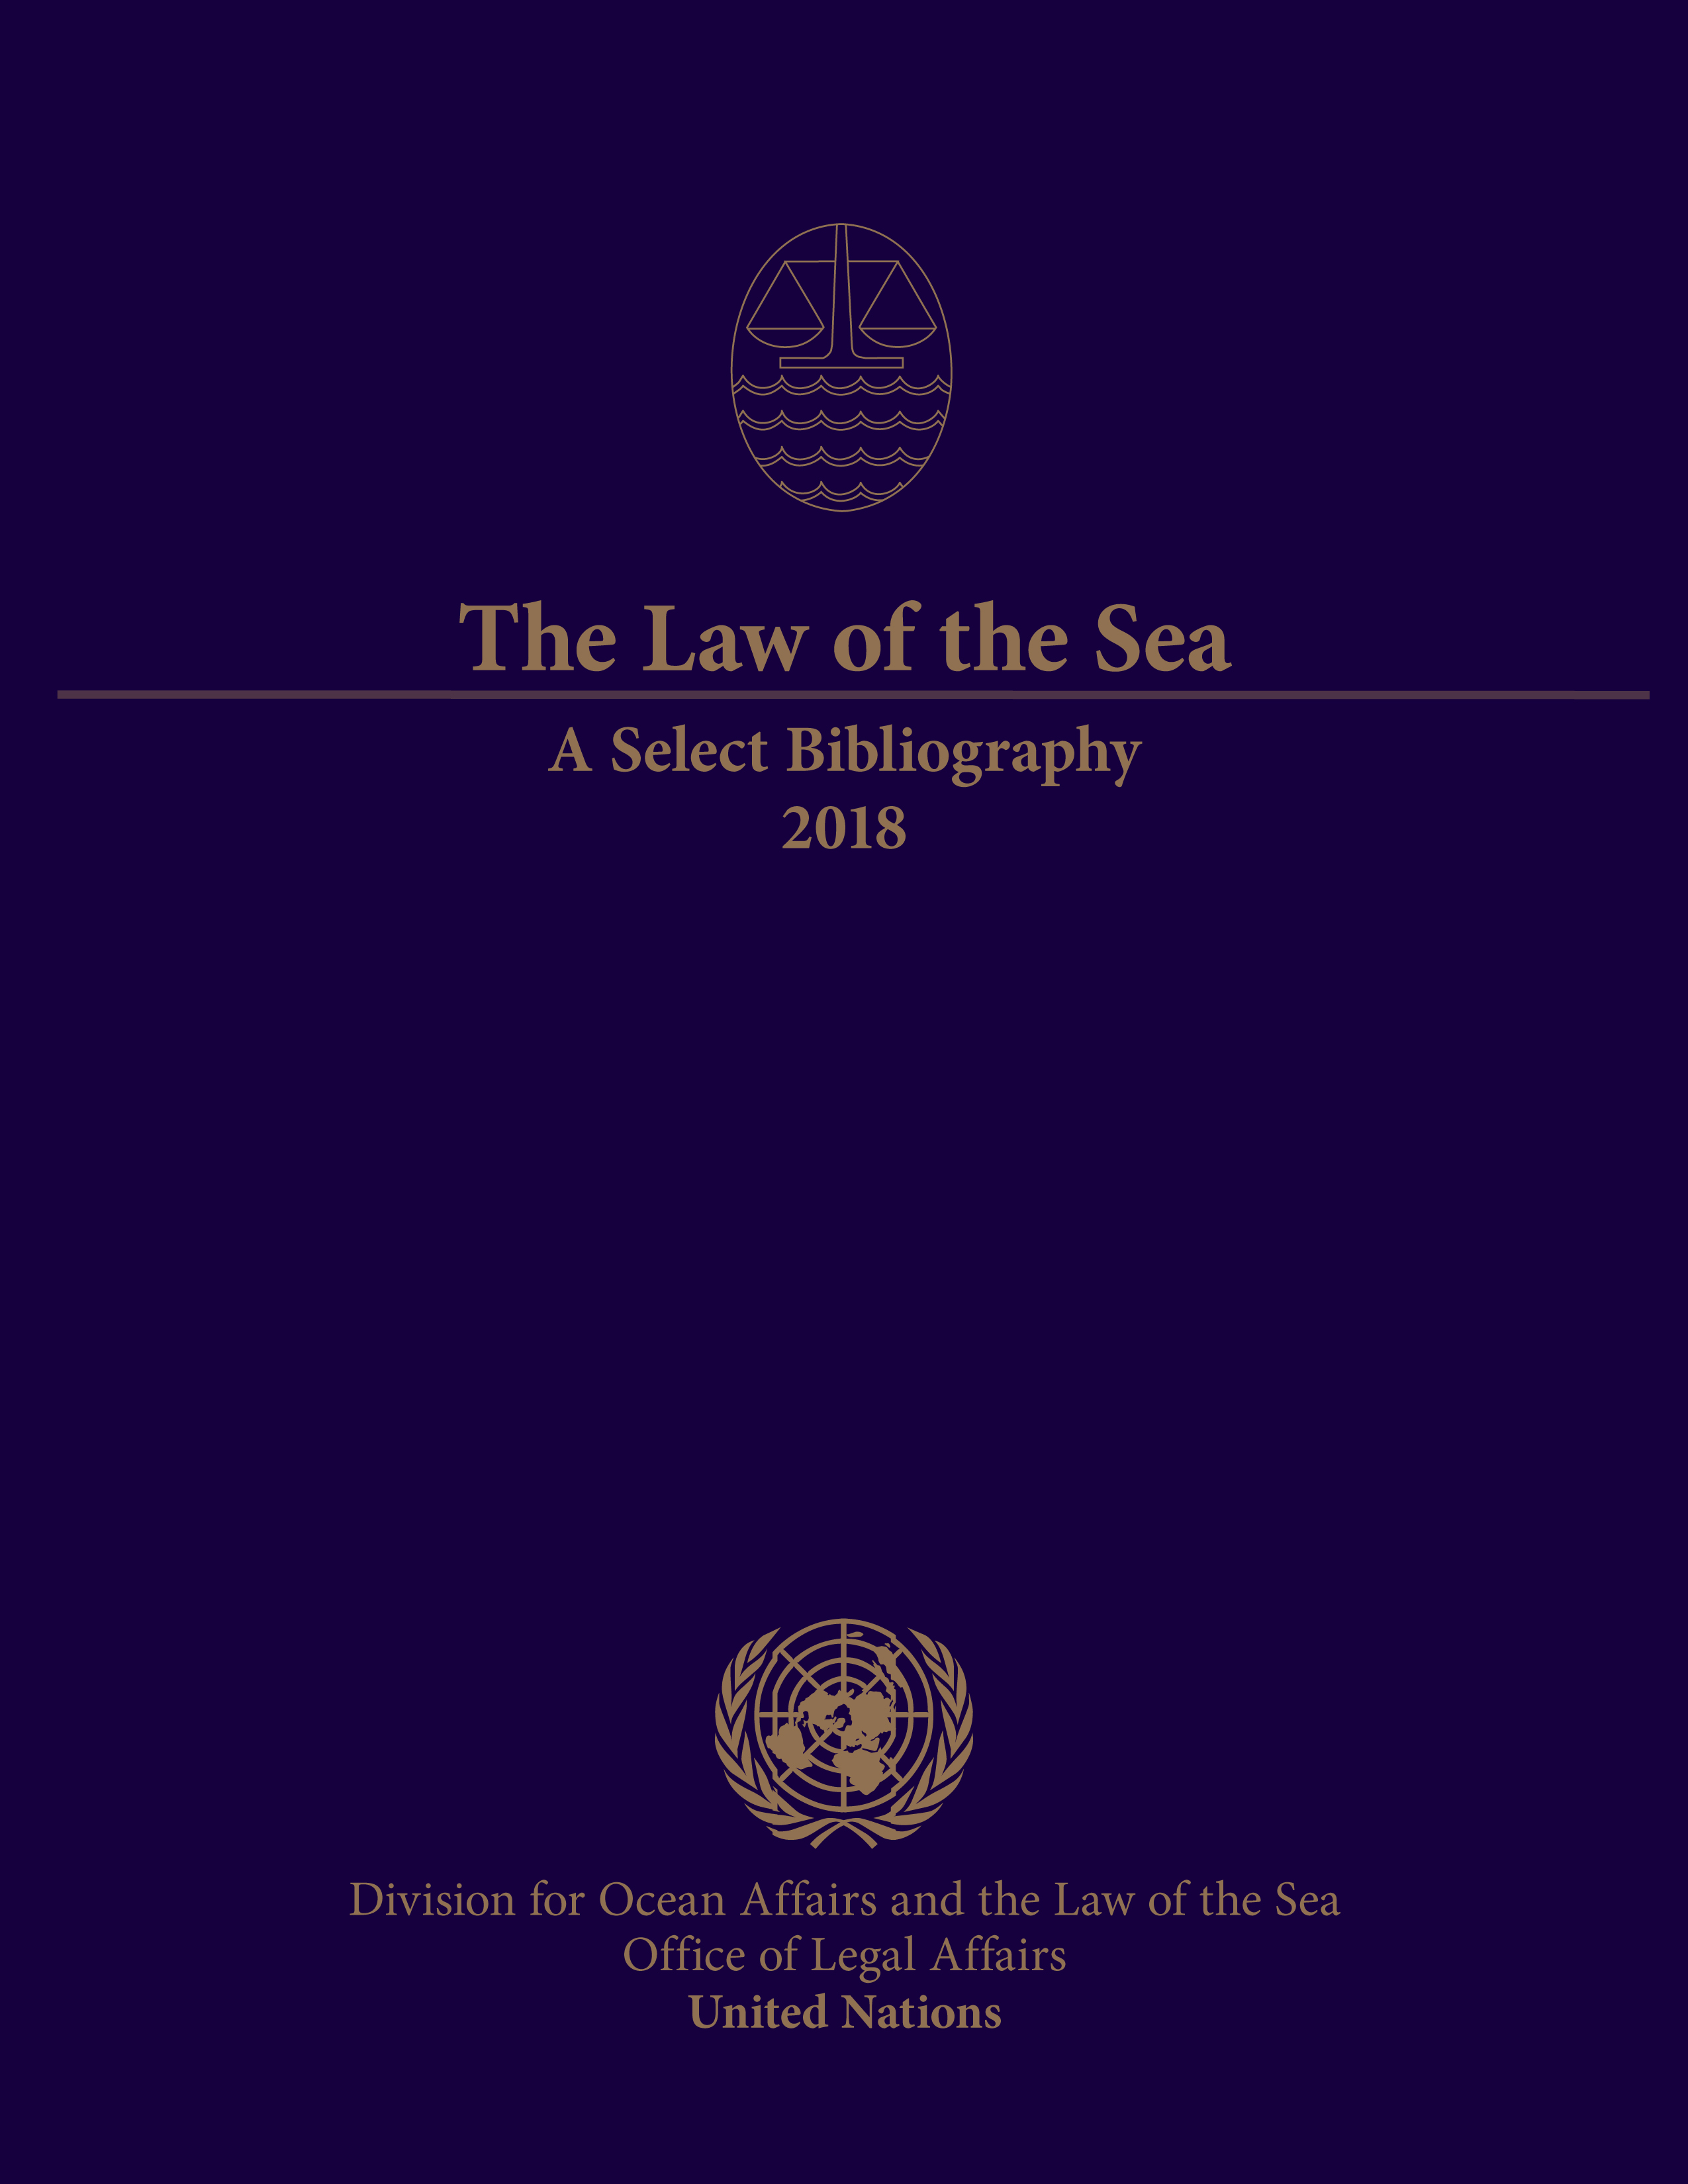 image of The Law of the Sea: A Select Bibliography 2018